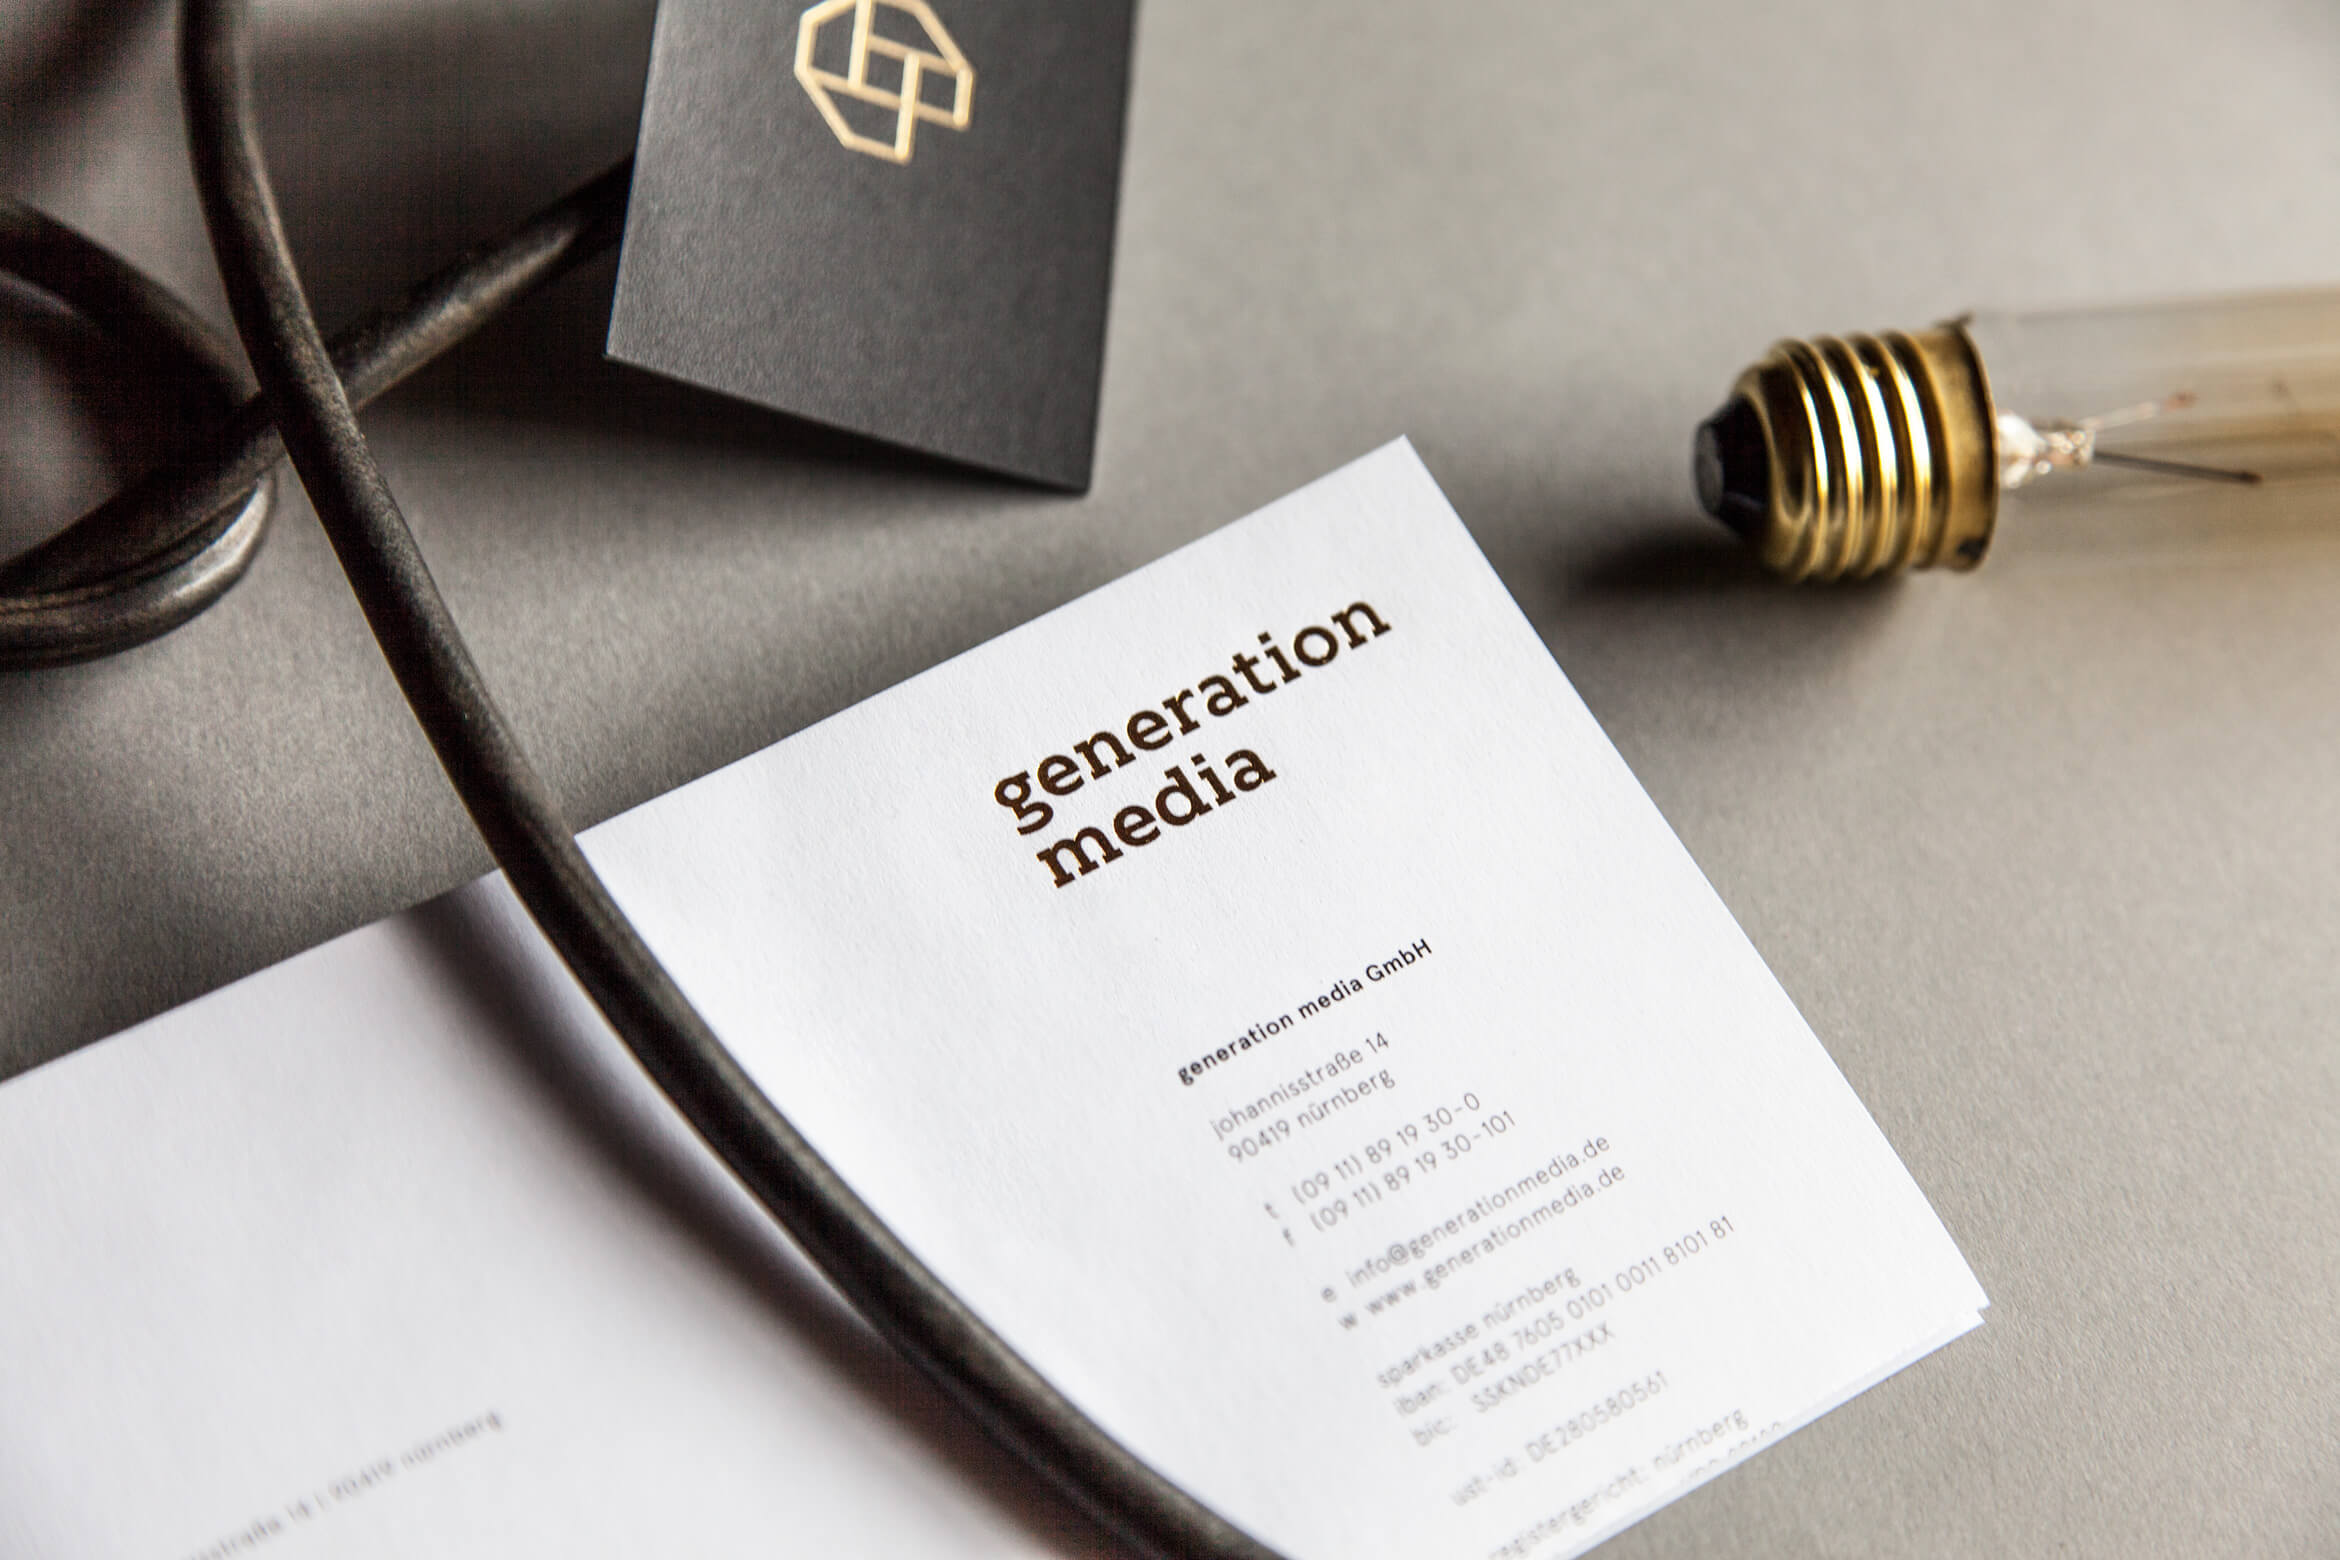 dreizehnundfuenf_design_studio_generation_media_3